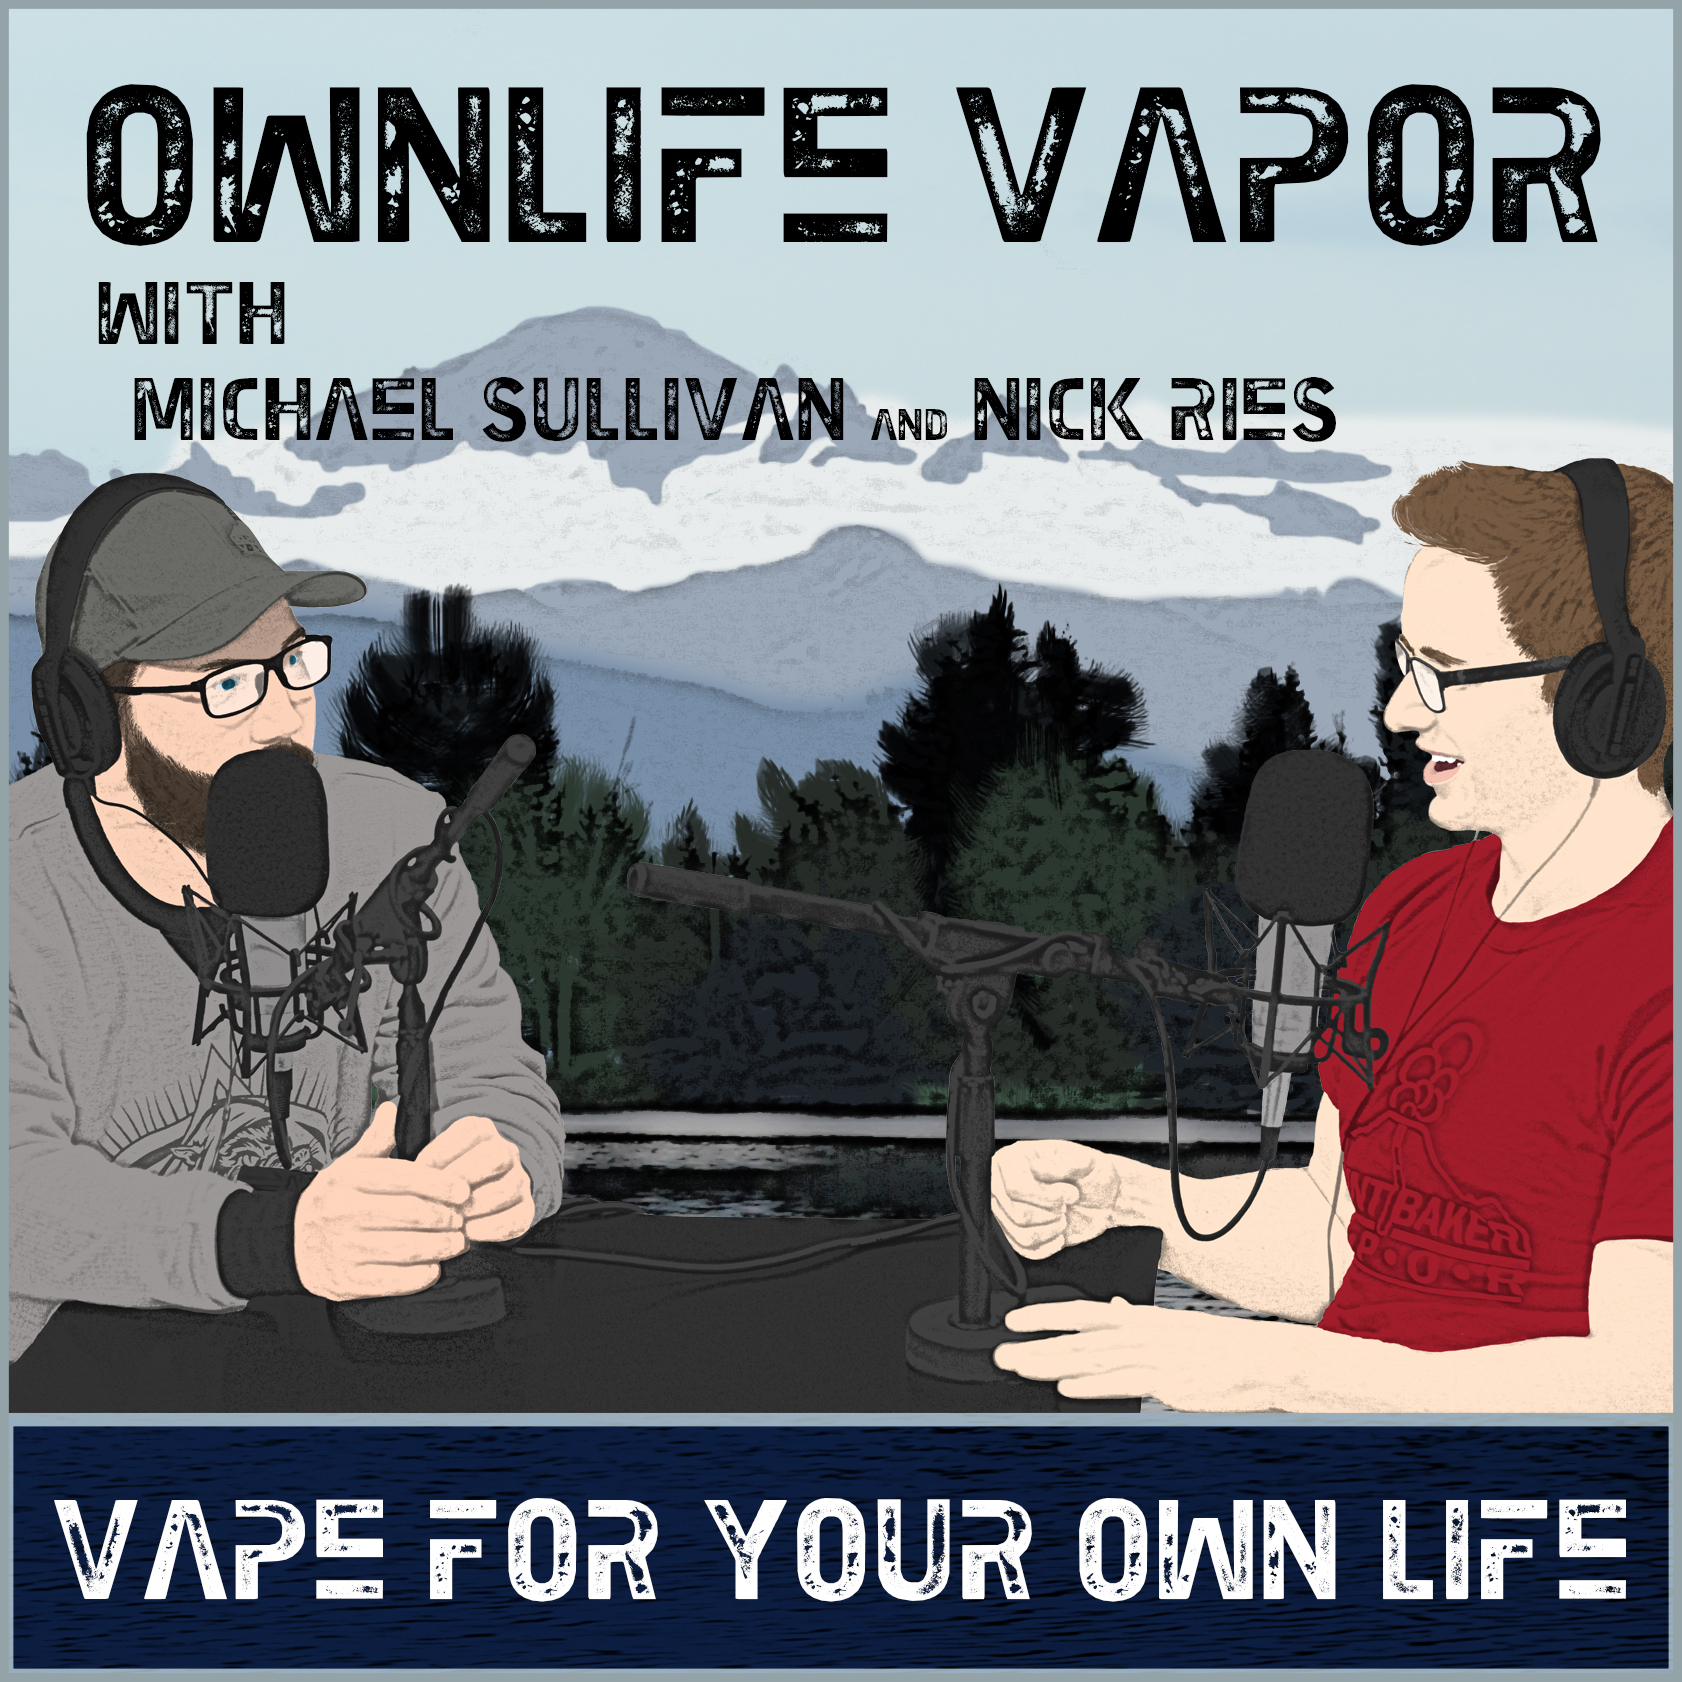 Episode 35 - Social Benefits of Smoking vs. Vaping